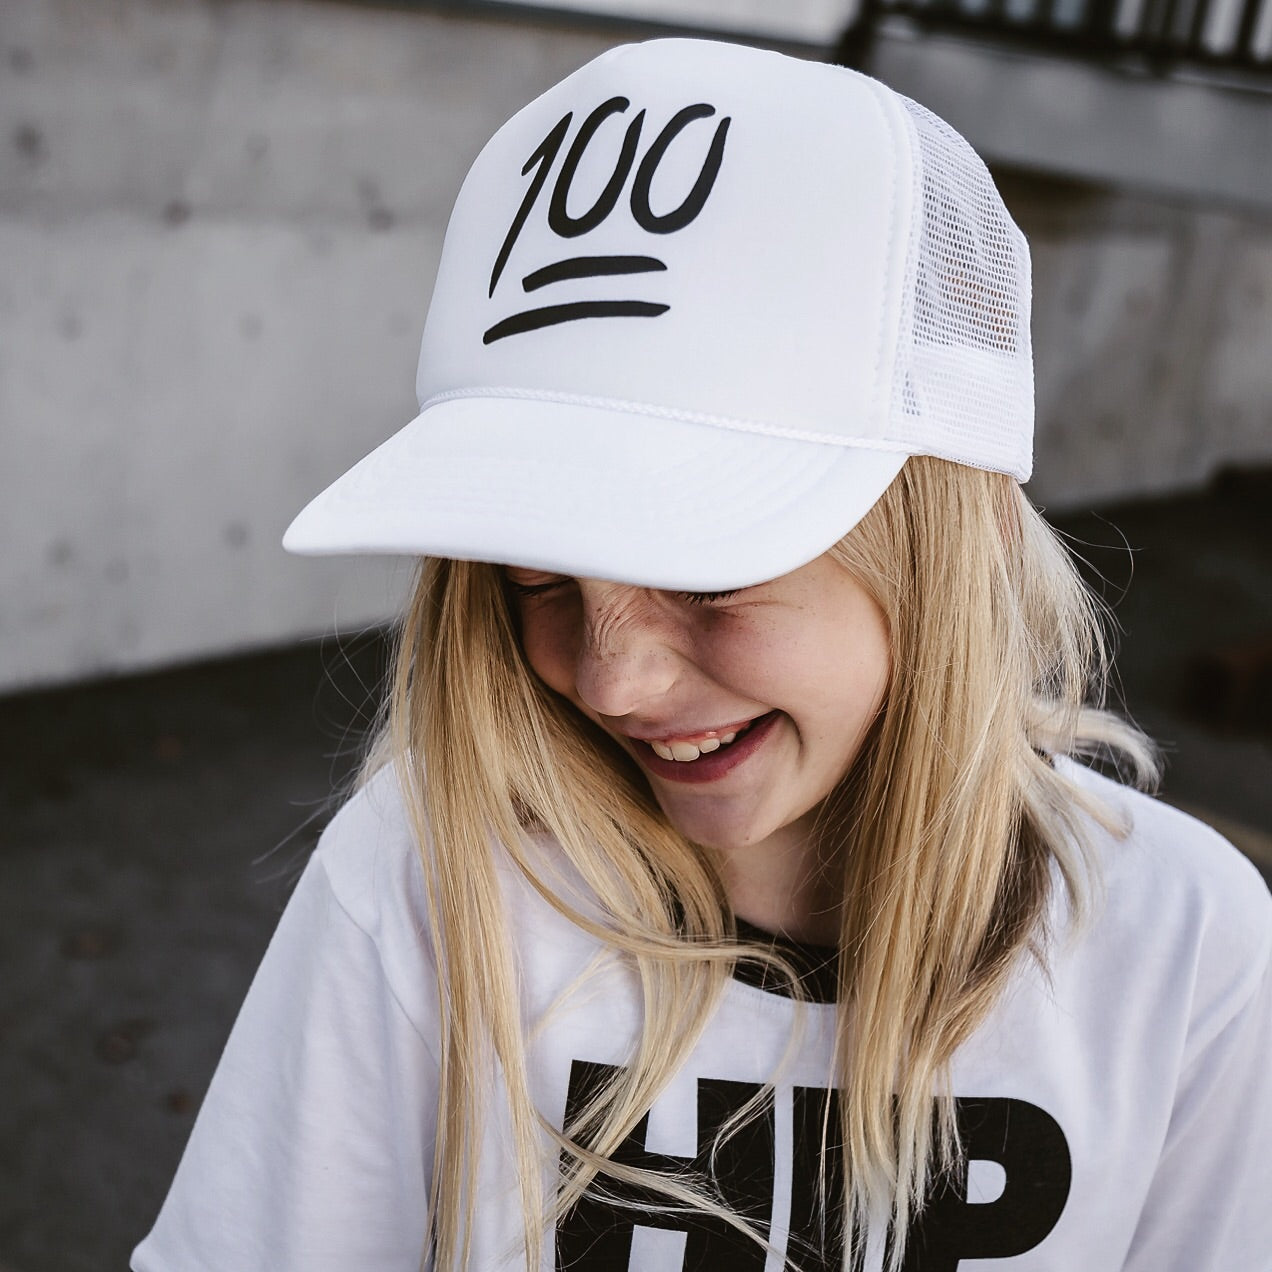 100 (all white) - Snapback Trucker Hat